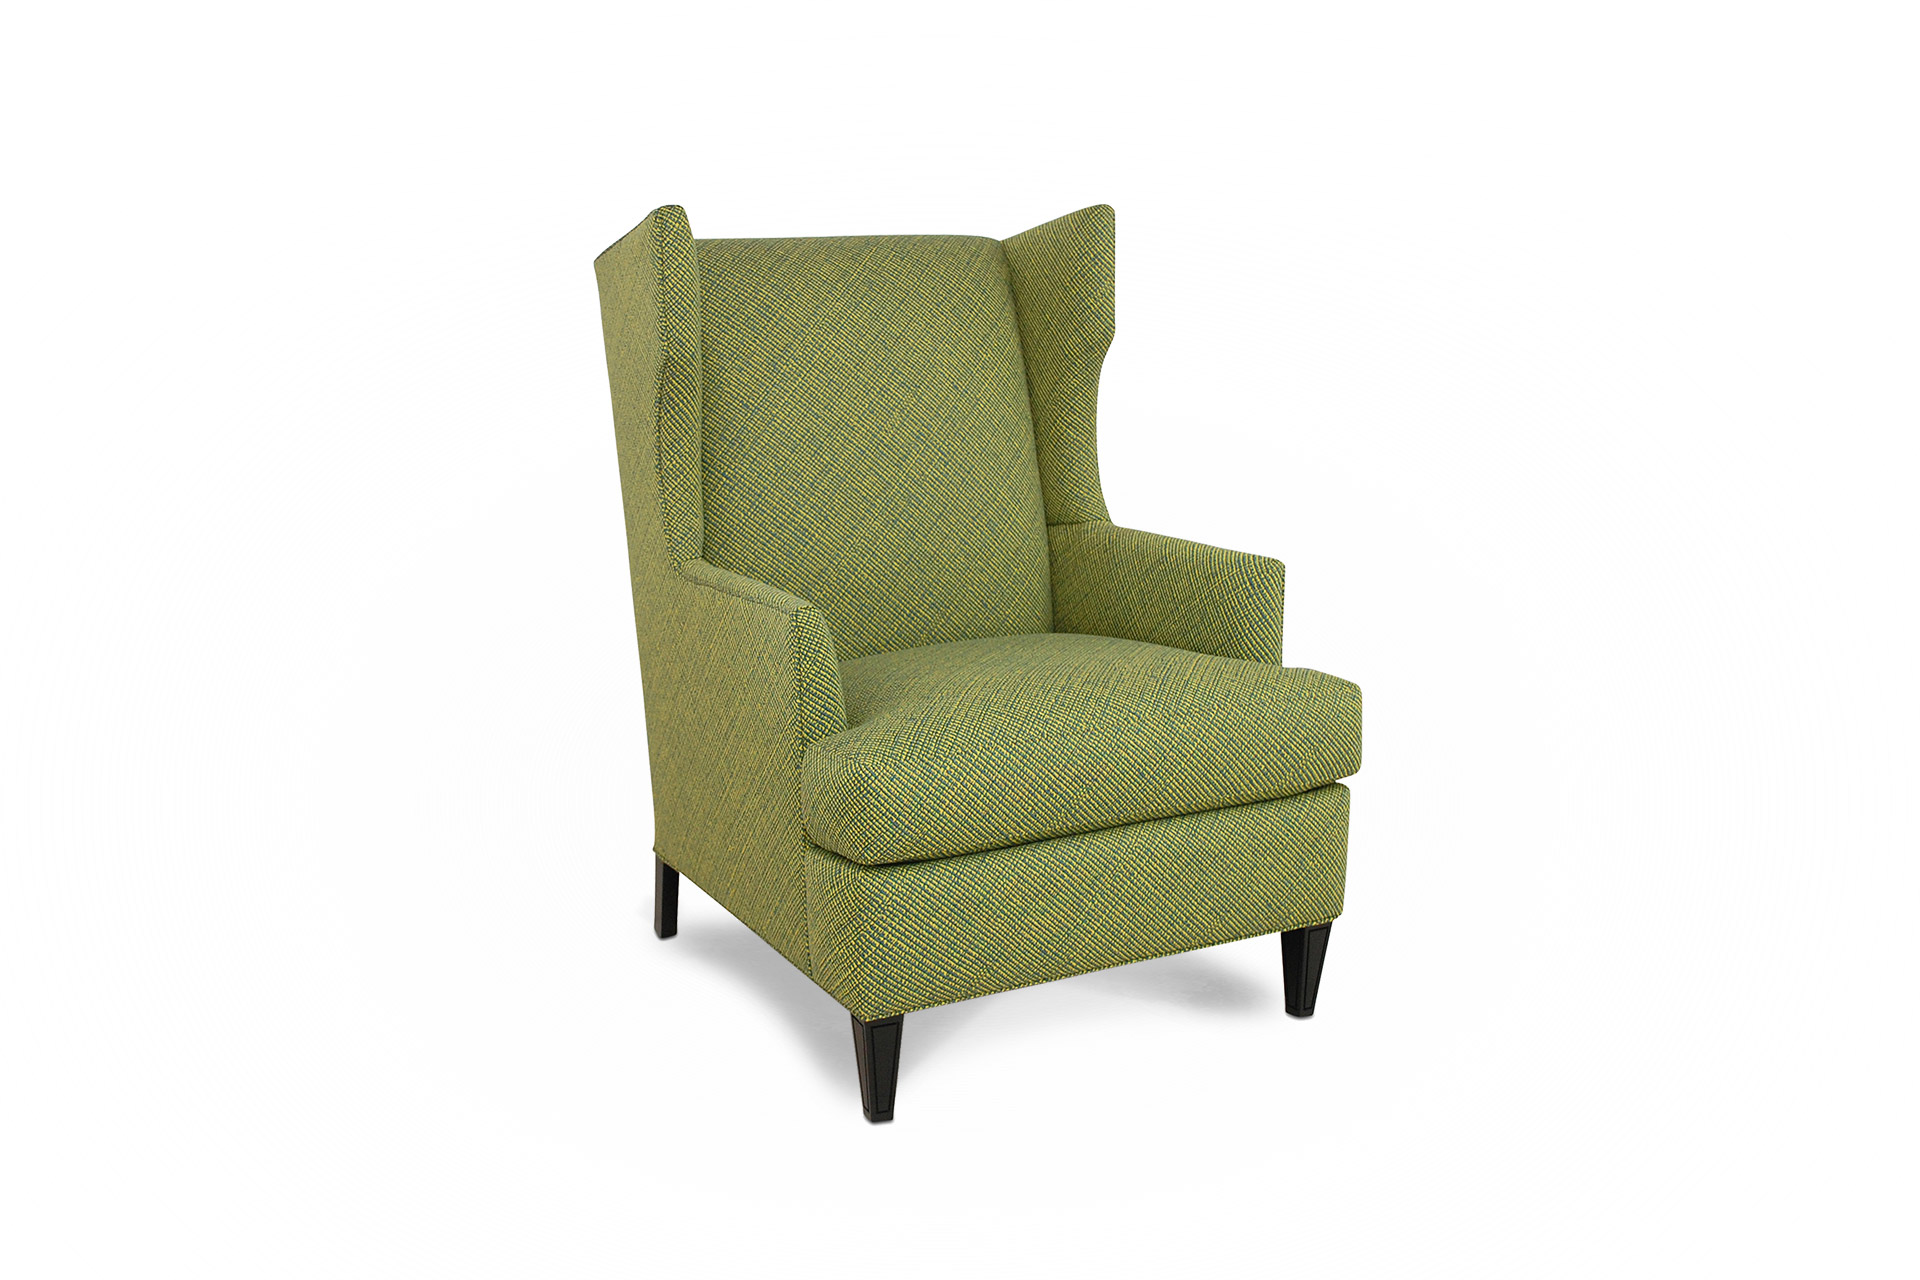 loft-and-manor-carter-chair-1